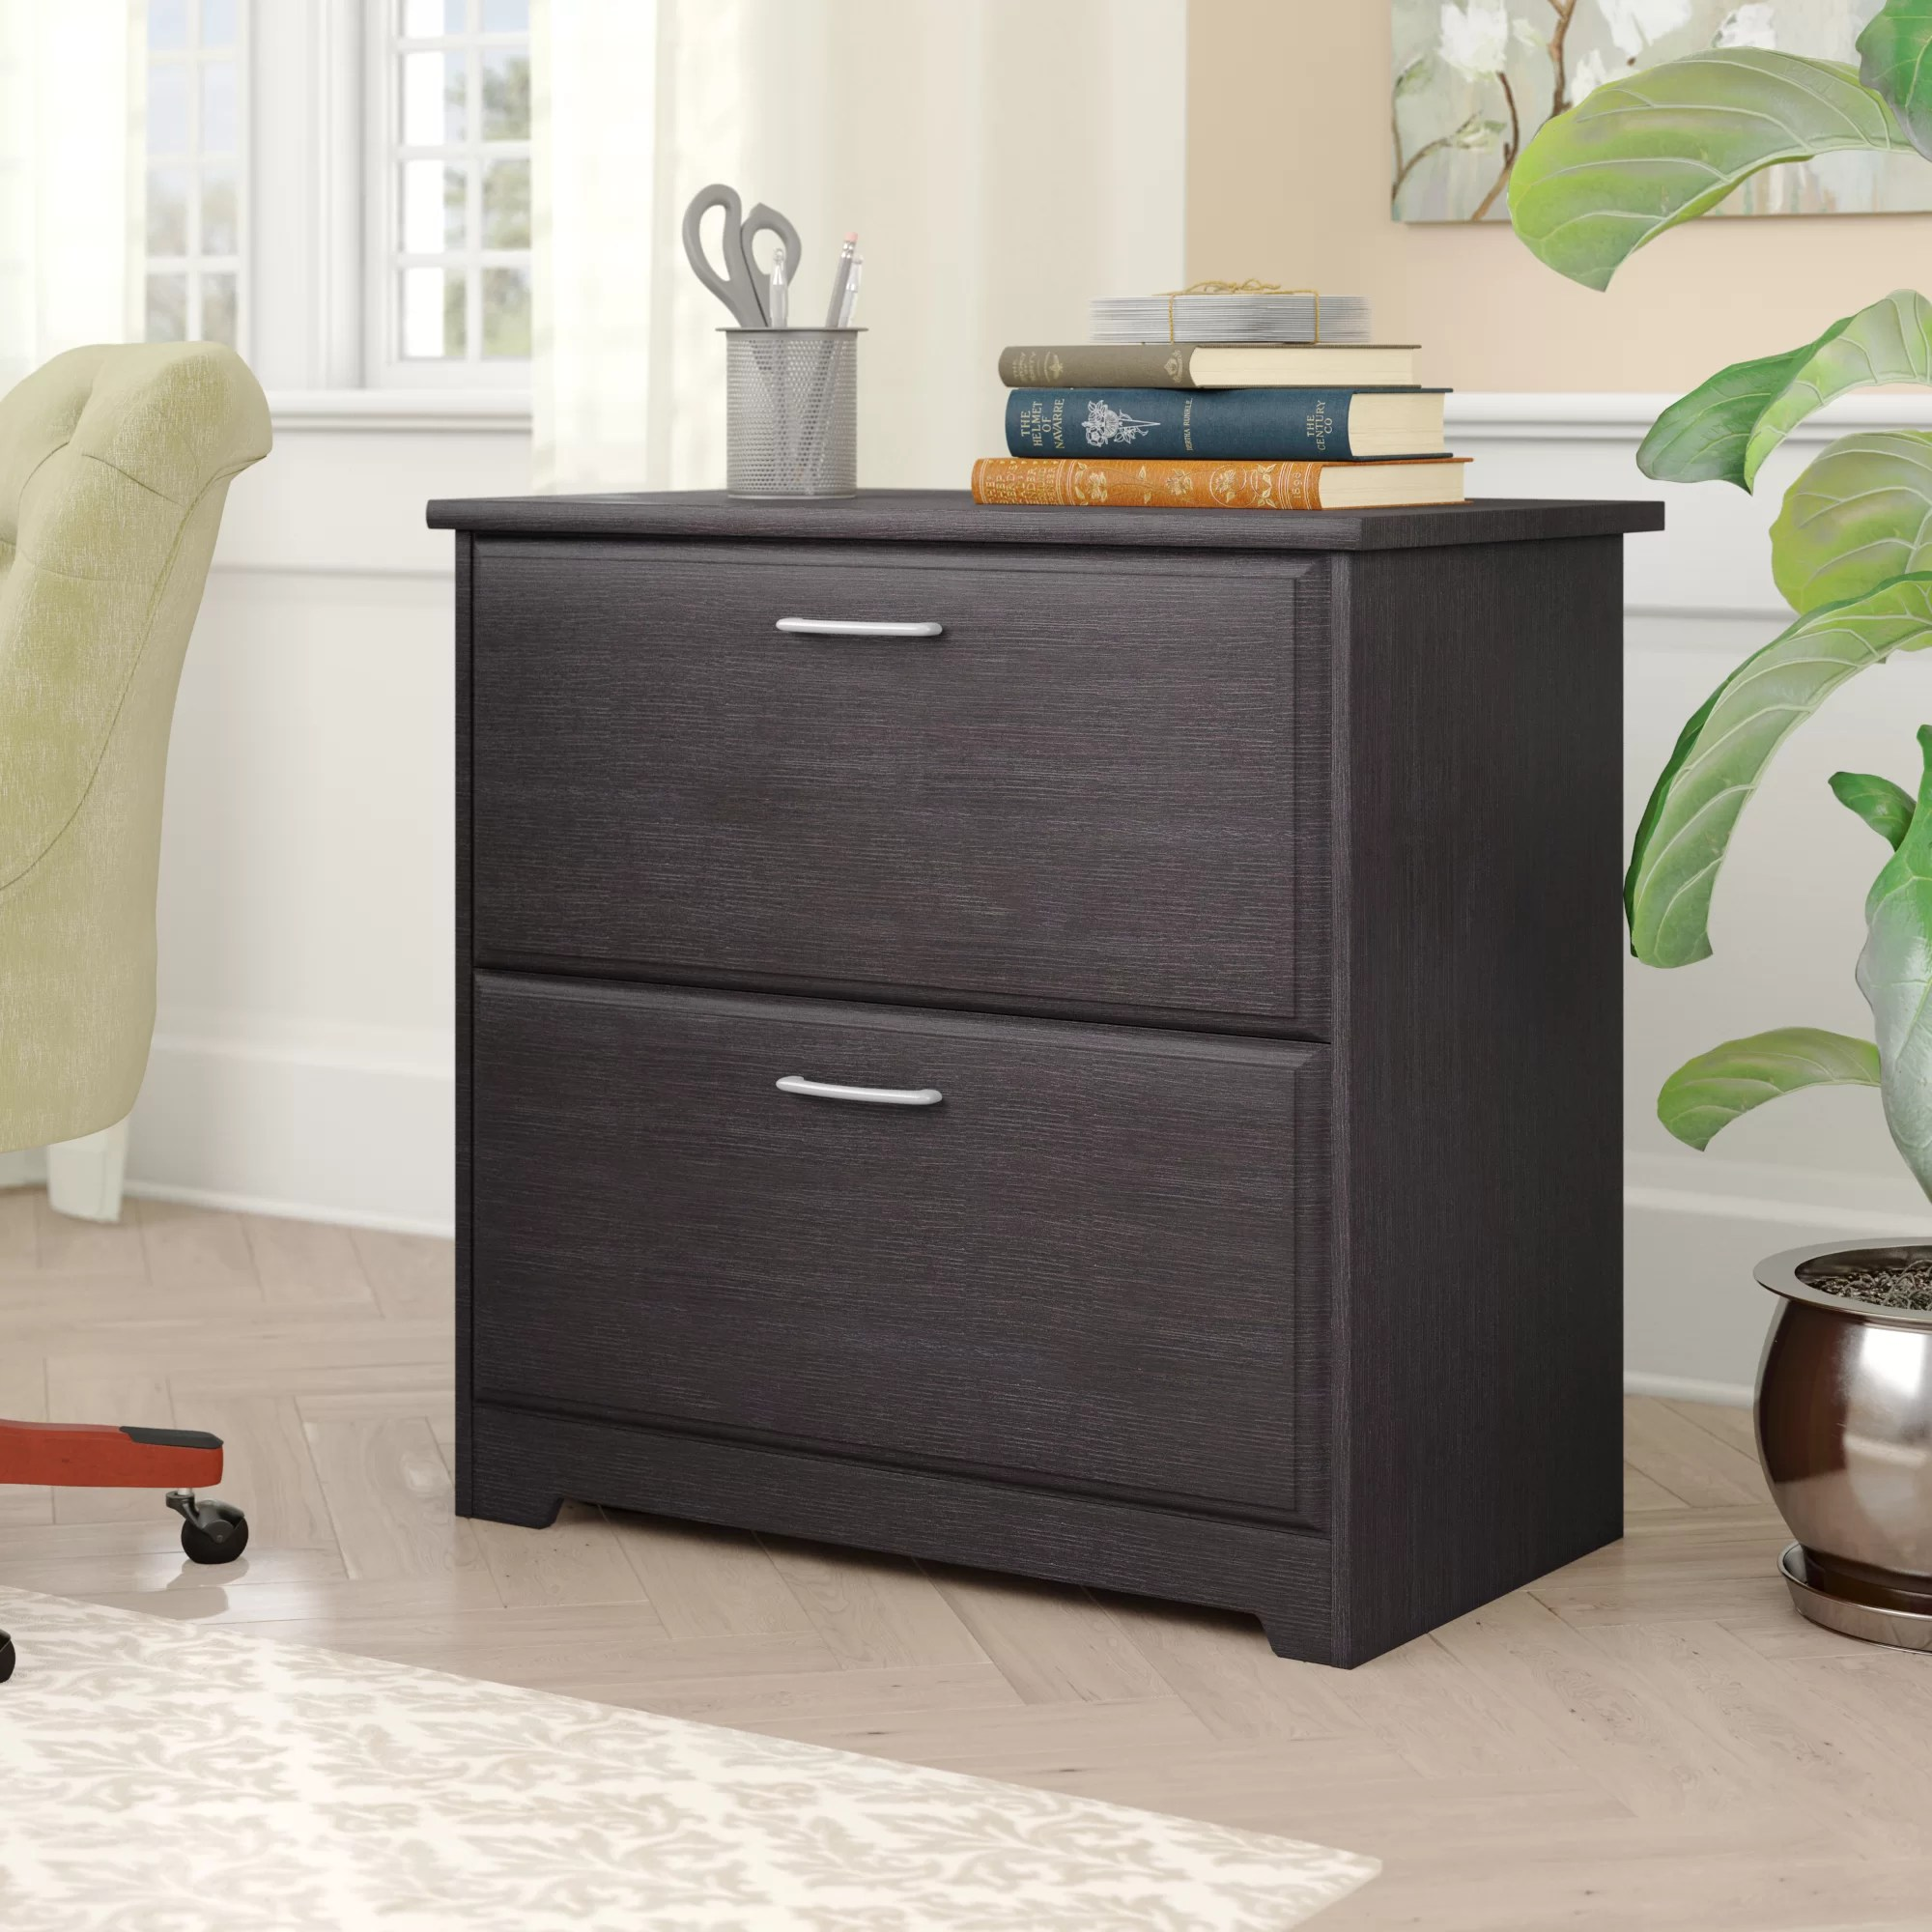 Red Barrel Studio Hillsdale 2 Drawer Lateral Filing Cabinet Reviews